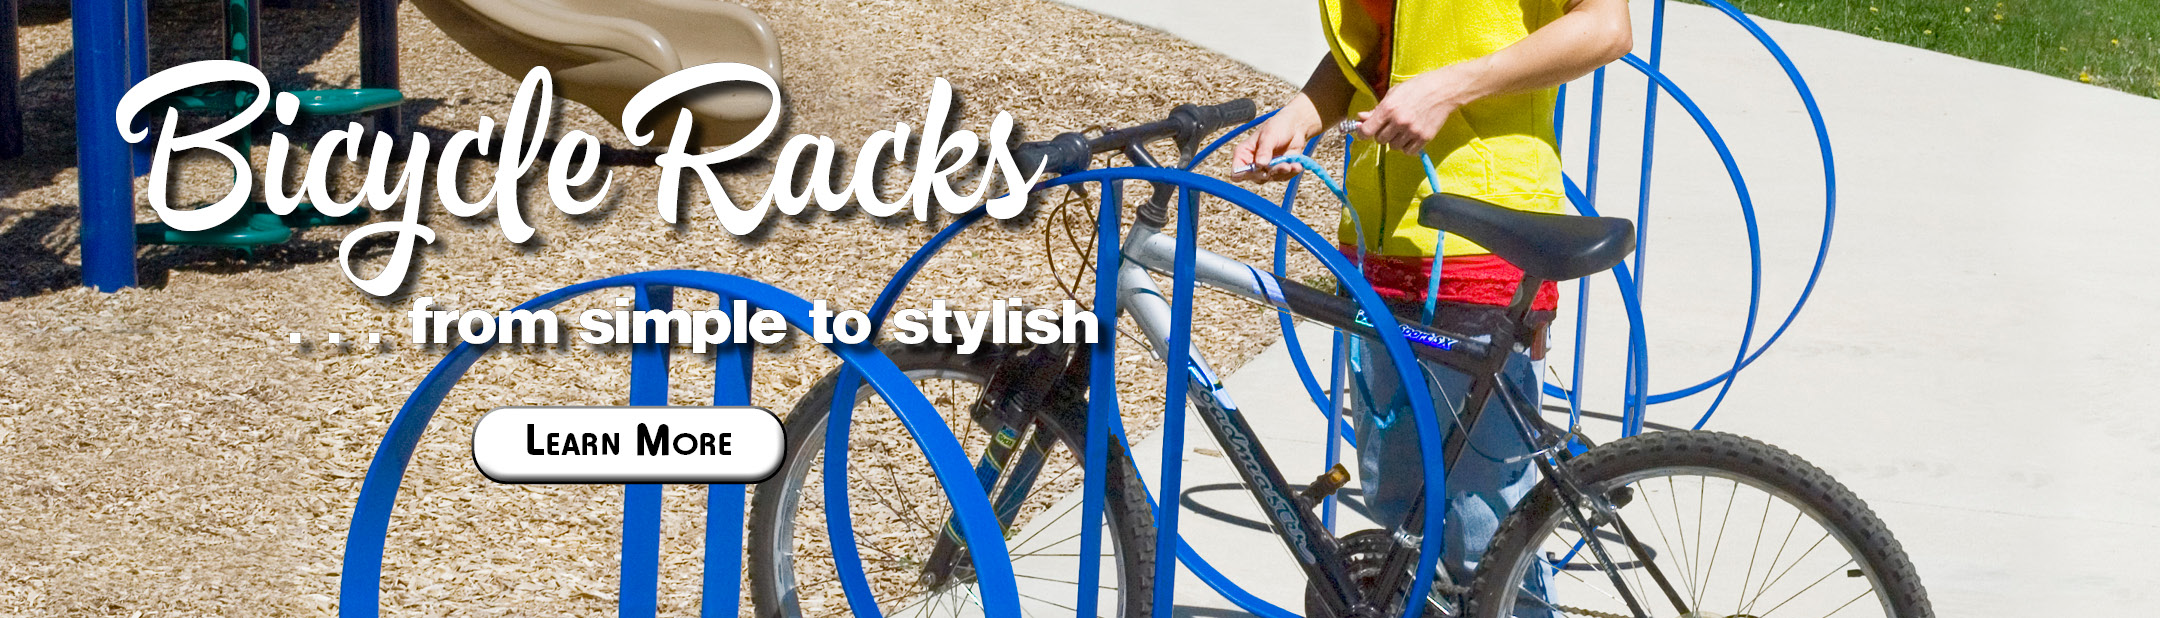 Pilot Rock Brand Bicycle Racks